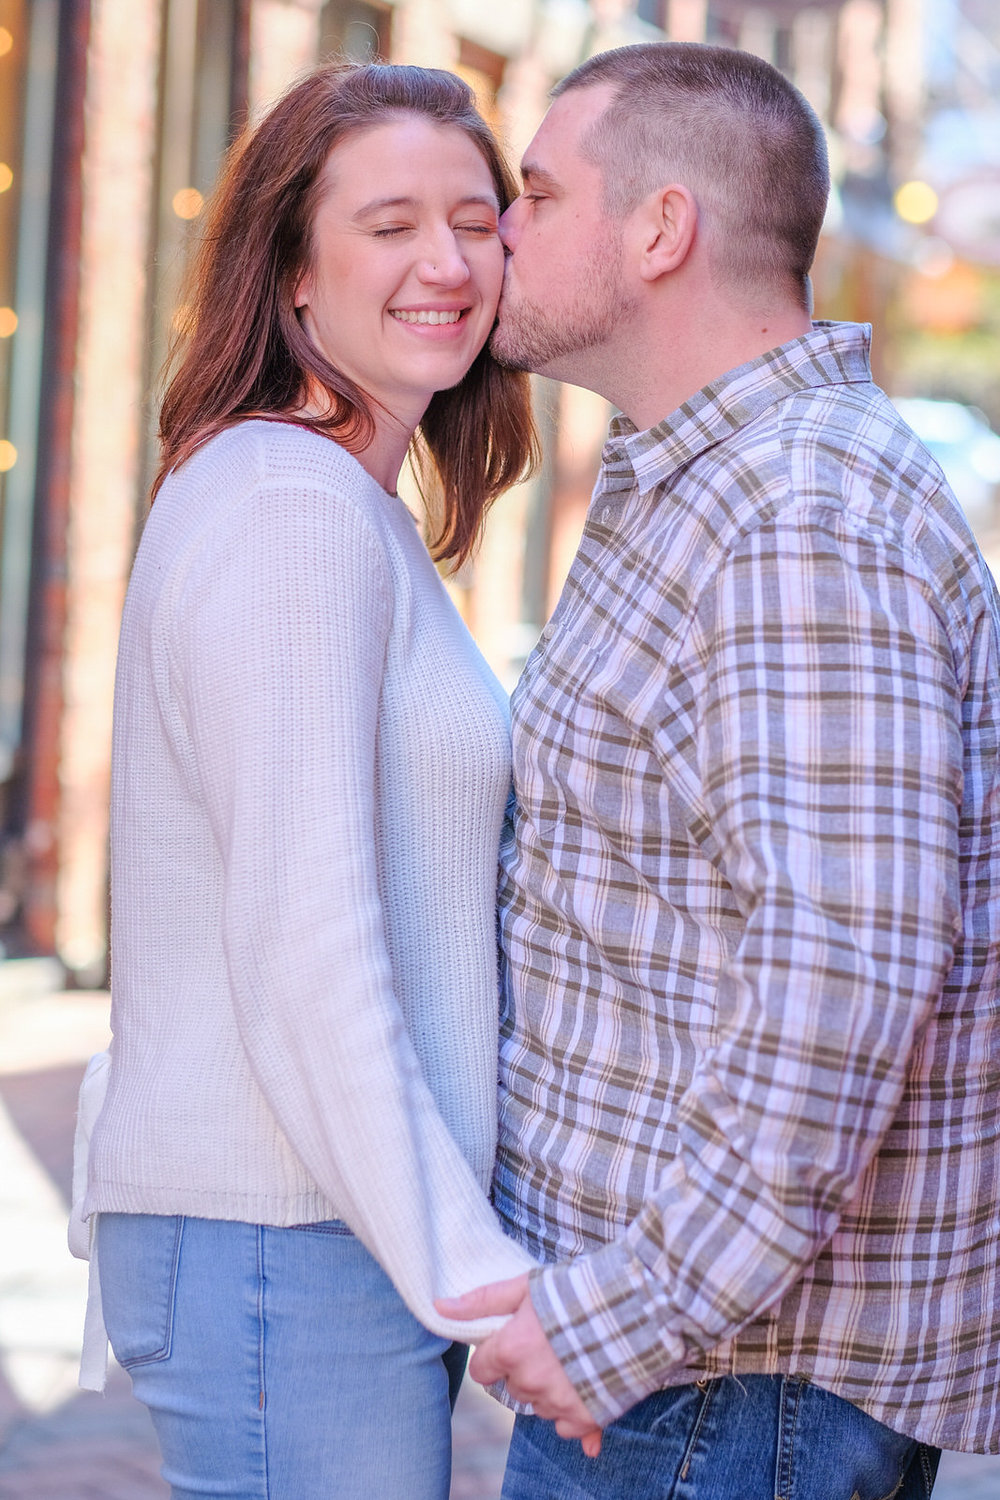 candid-portsmouth-nh-engagement-photography-54.jpg